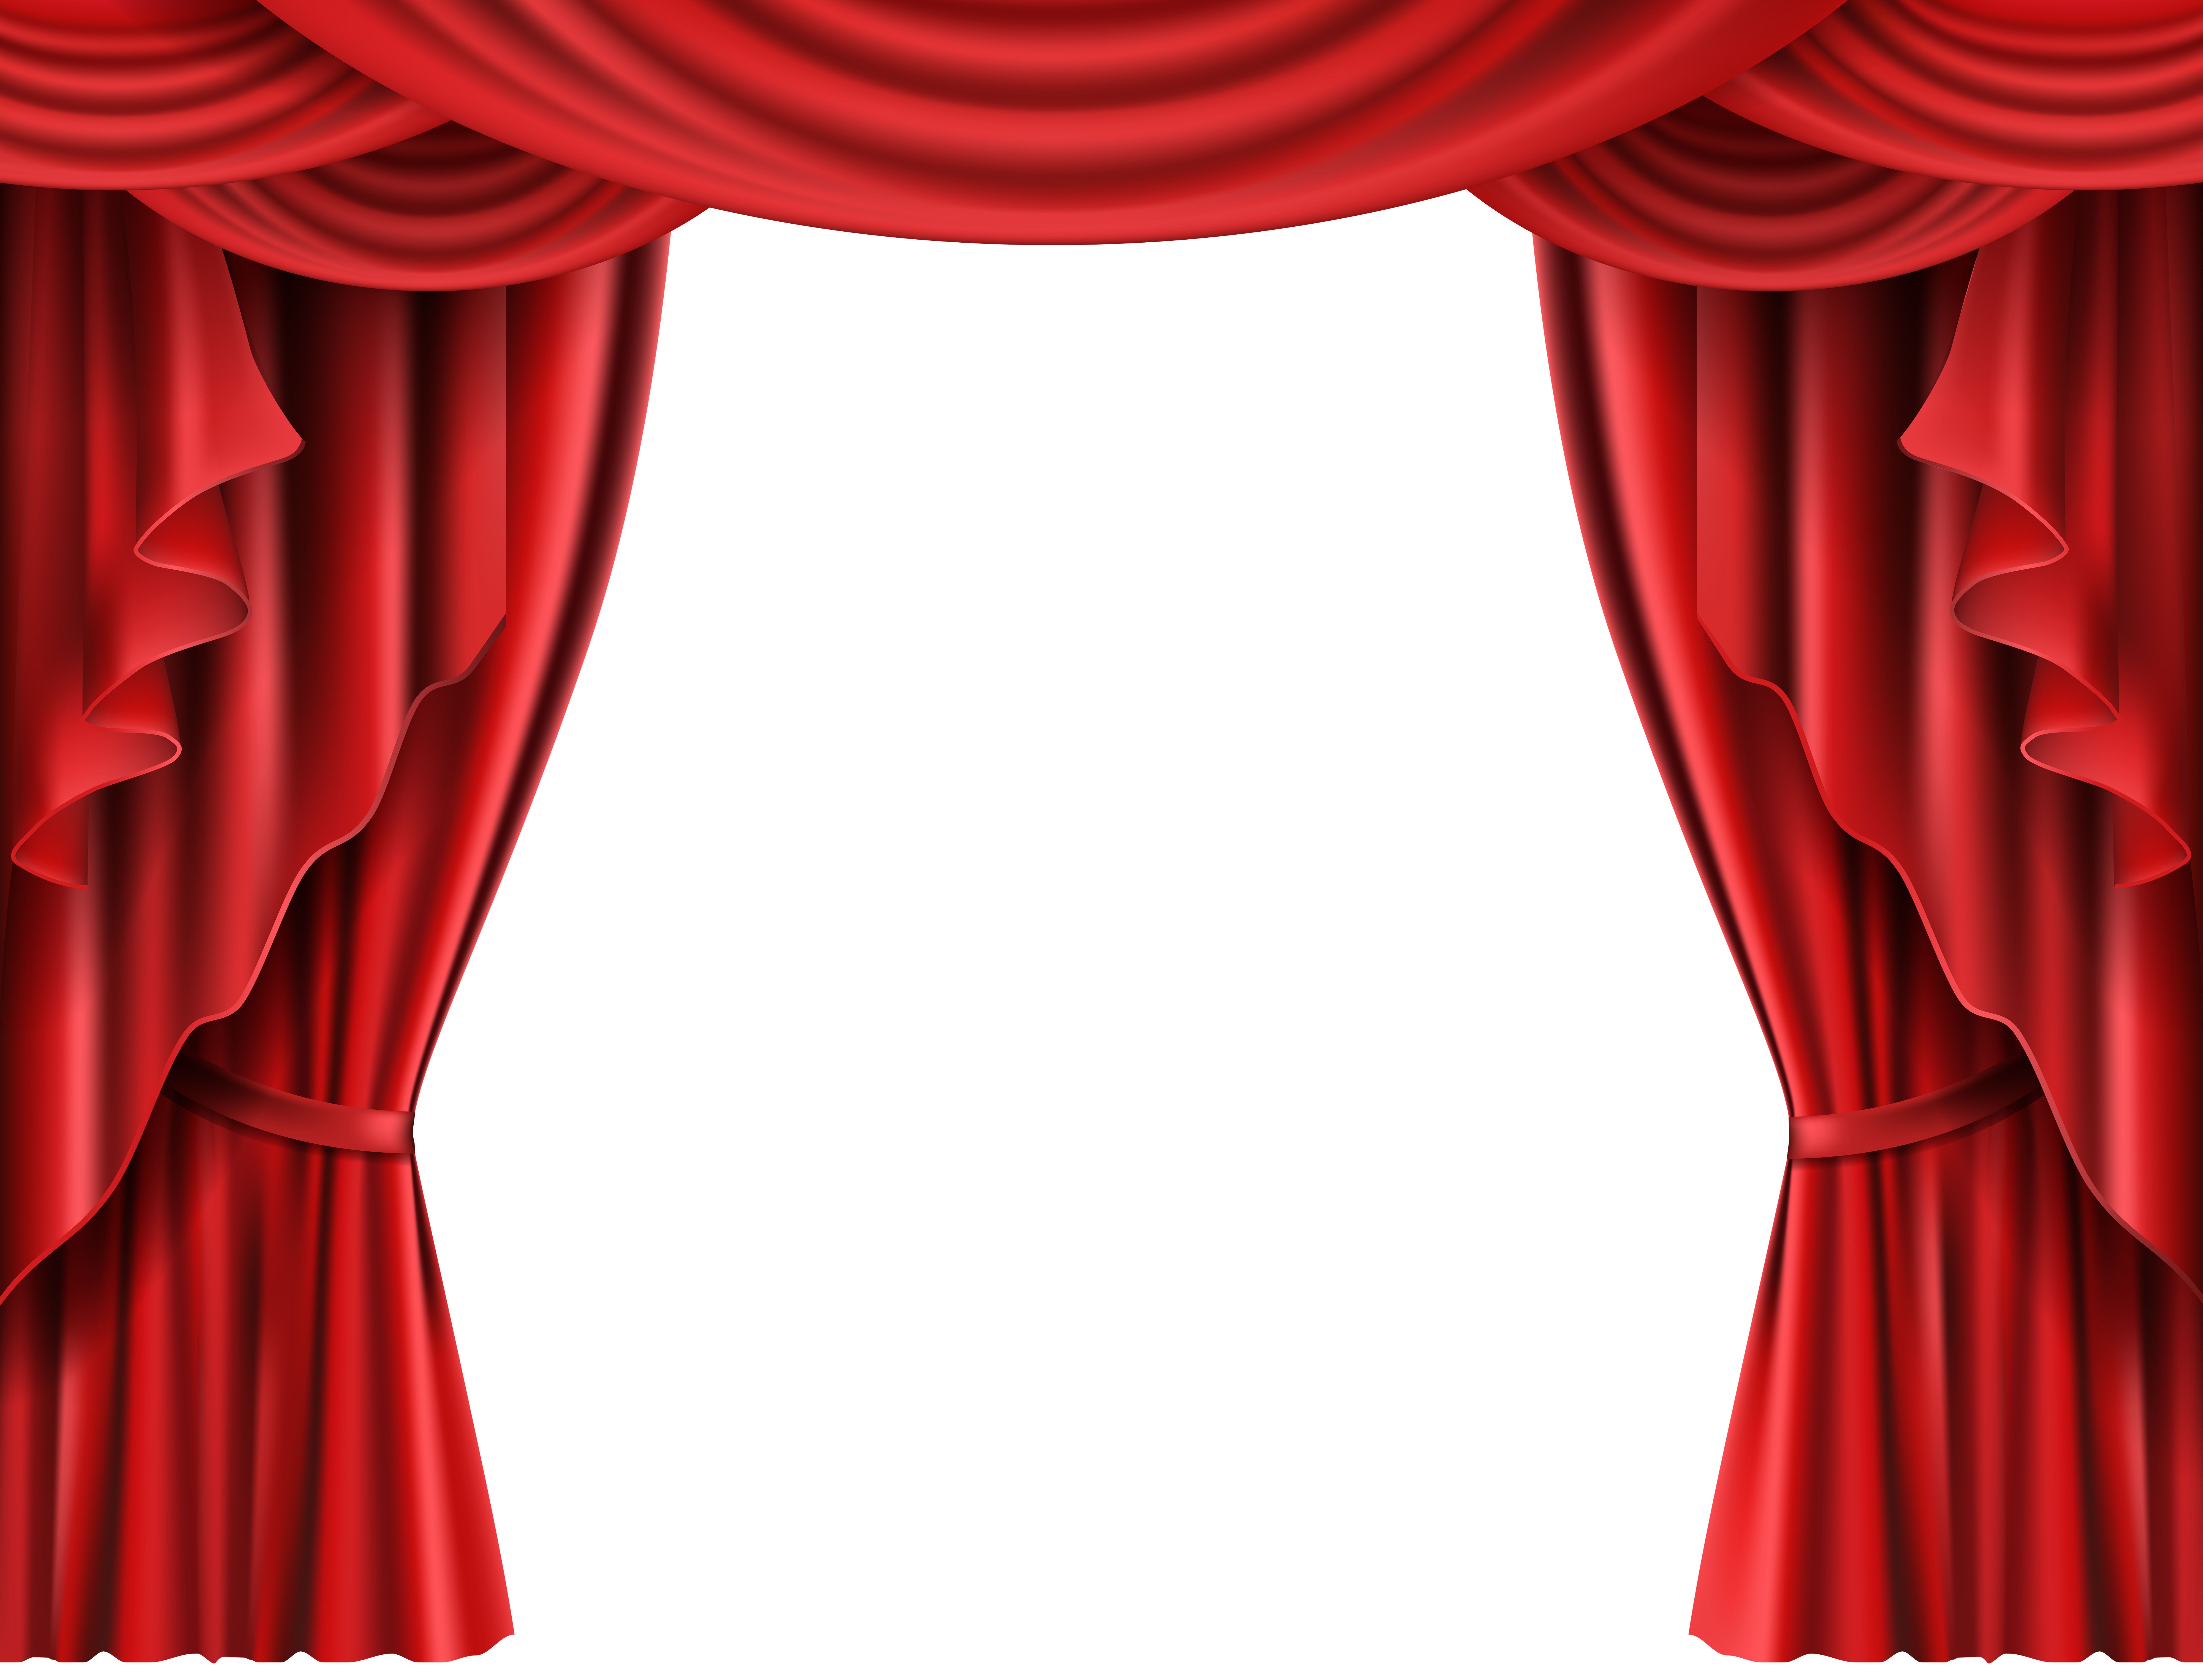 Red Theater Curtain Transparent Png Clip Art Image Gallery Yopriceville High Quality Images And Transparent Png Free Clipart Ramki Fotomontazh